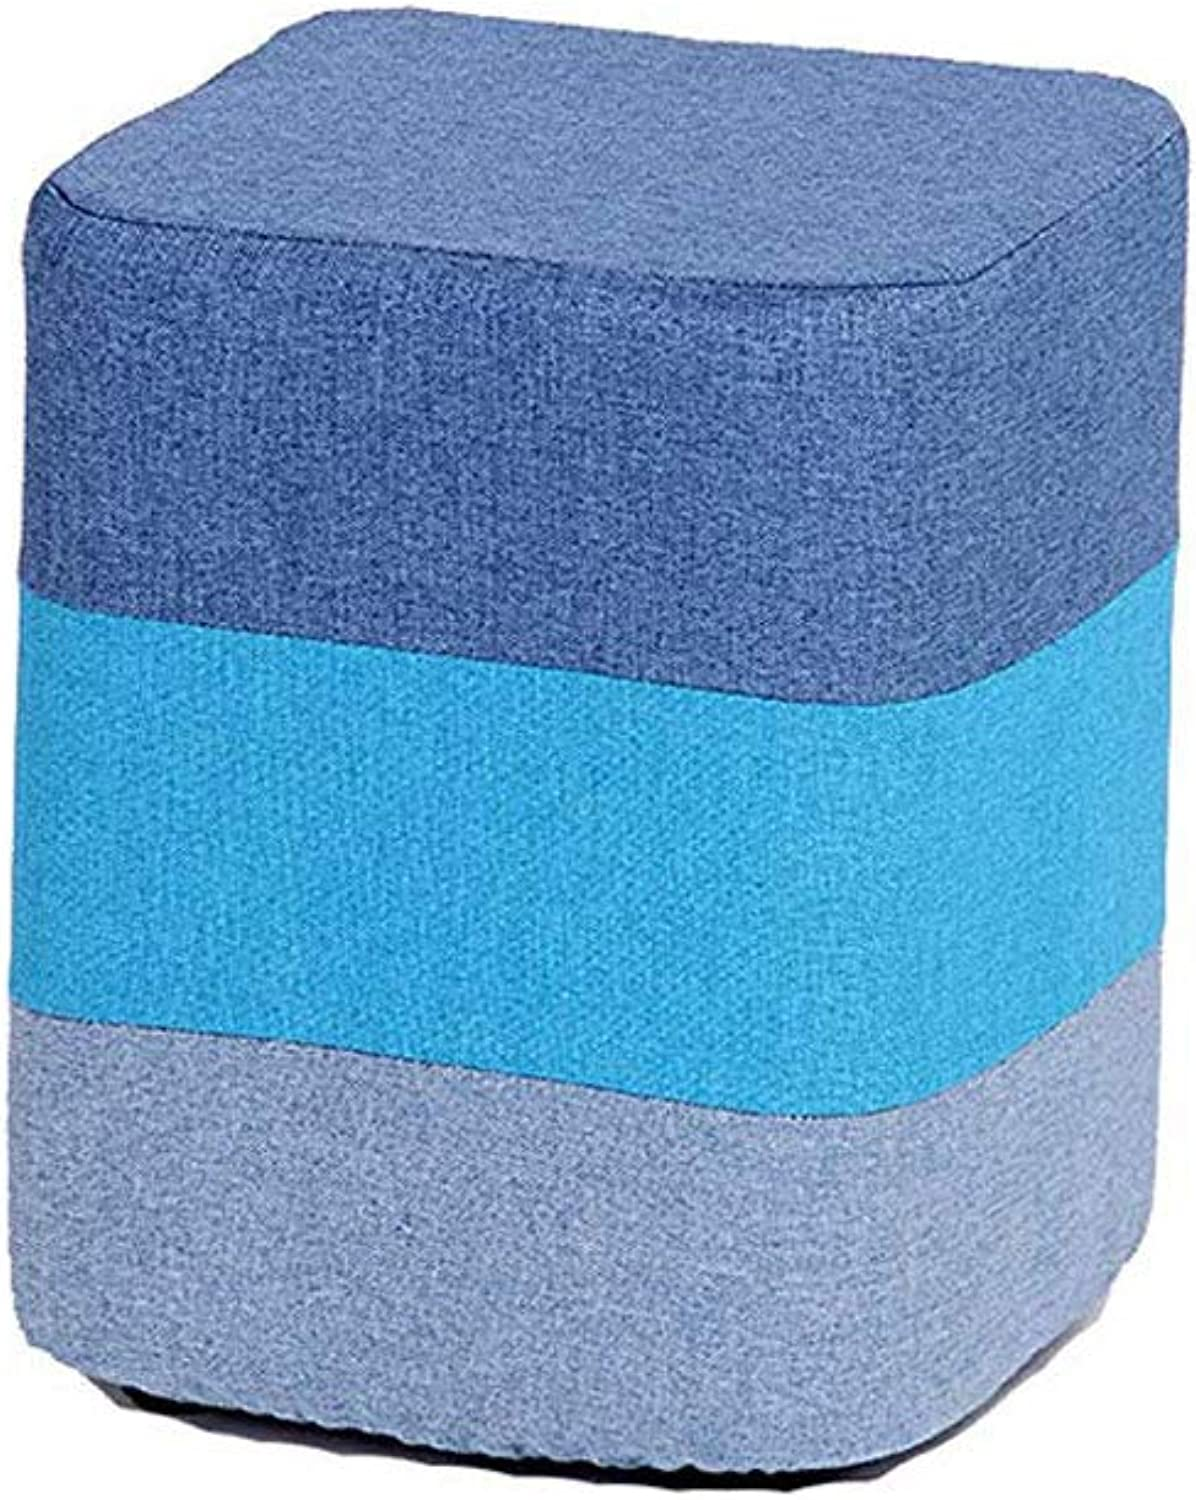 Footstool, Square Wooden Padded Footstool Osman Stool Detachable Fabric Sofa Bench shoes Bench (color   bluee)